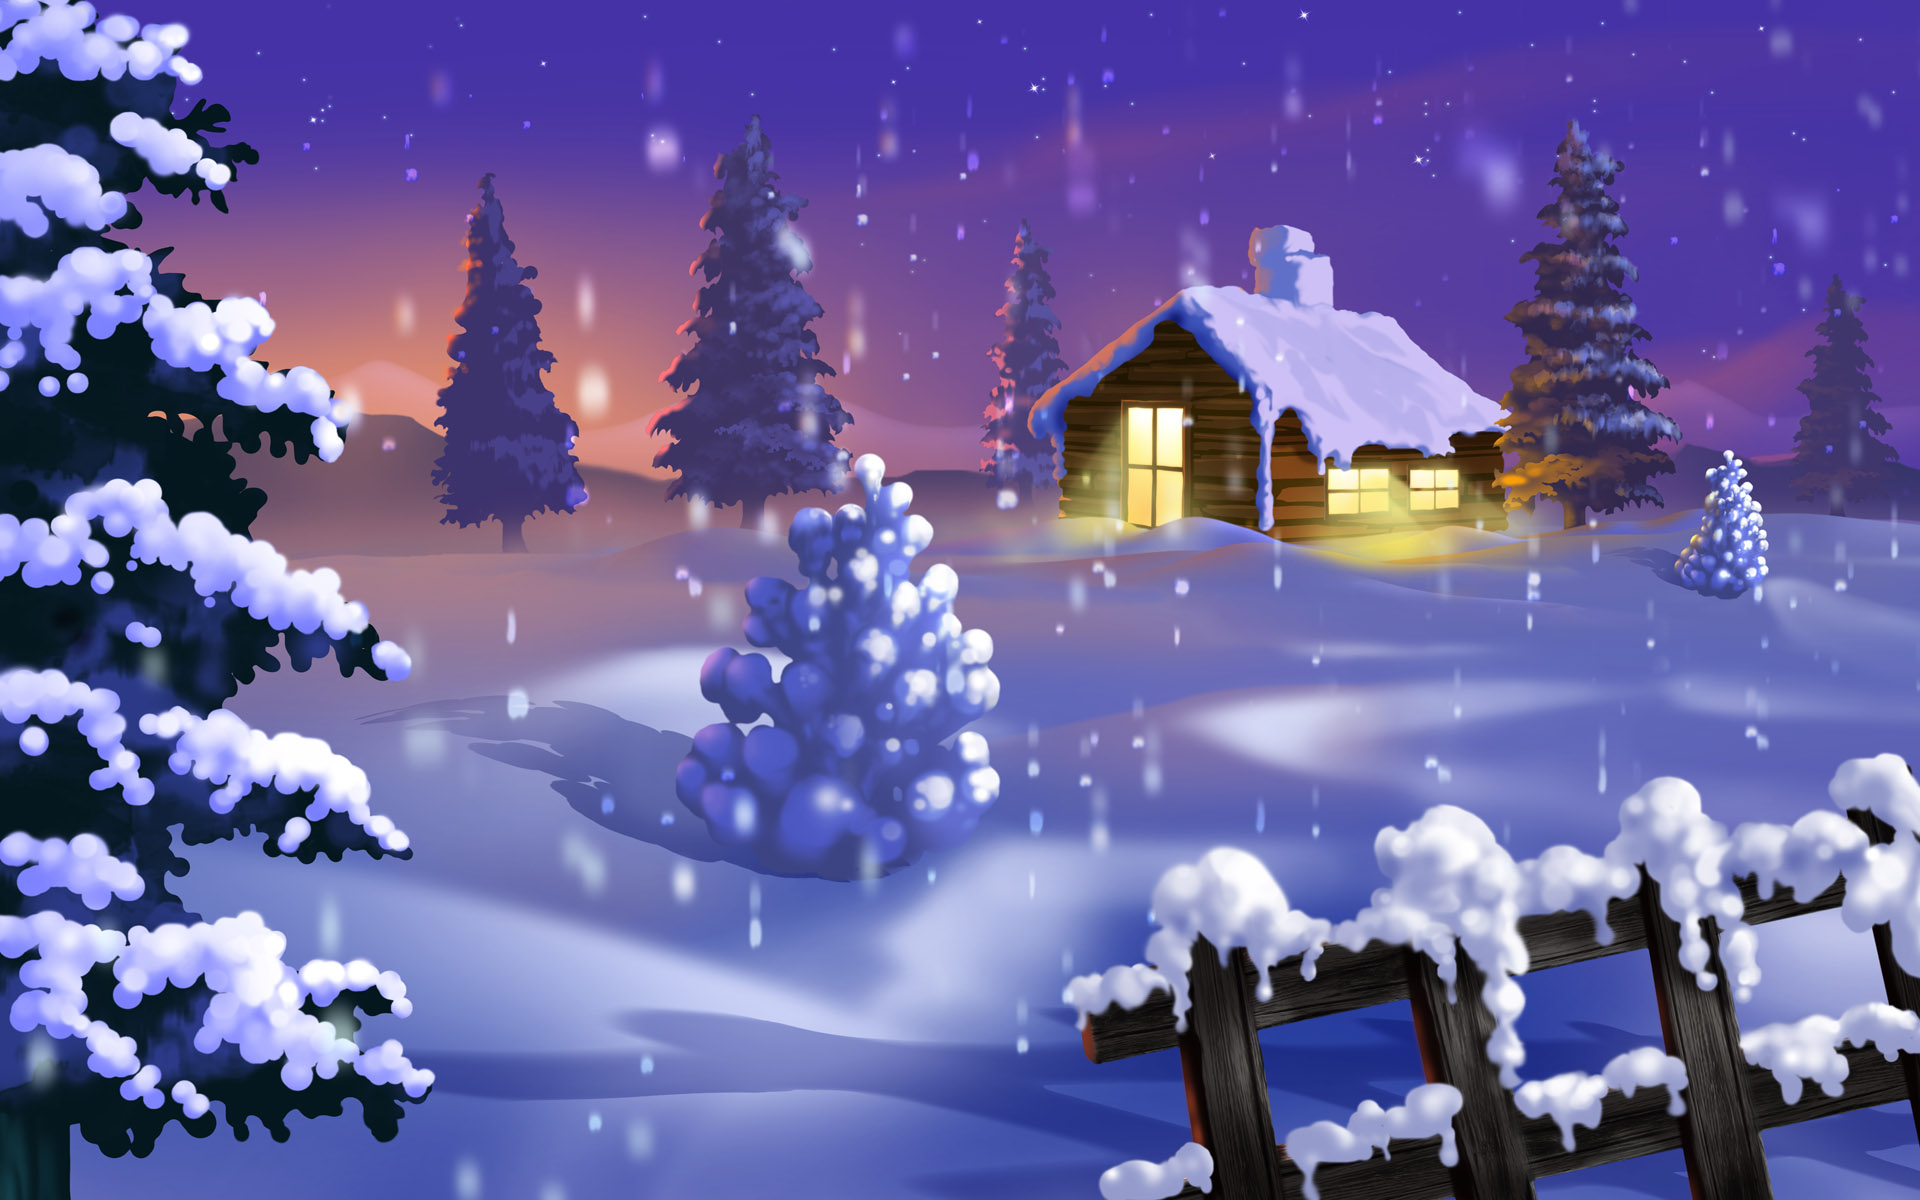 Holiday Wallpapers and Screensavers Desktop Image 1920x1200